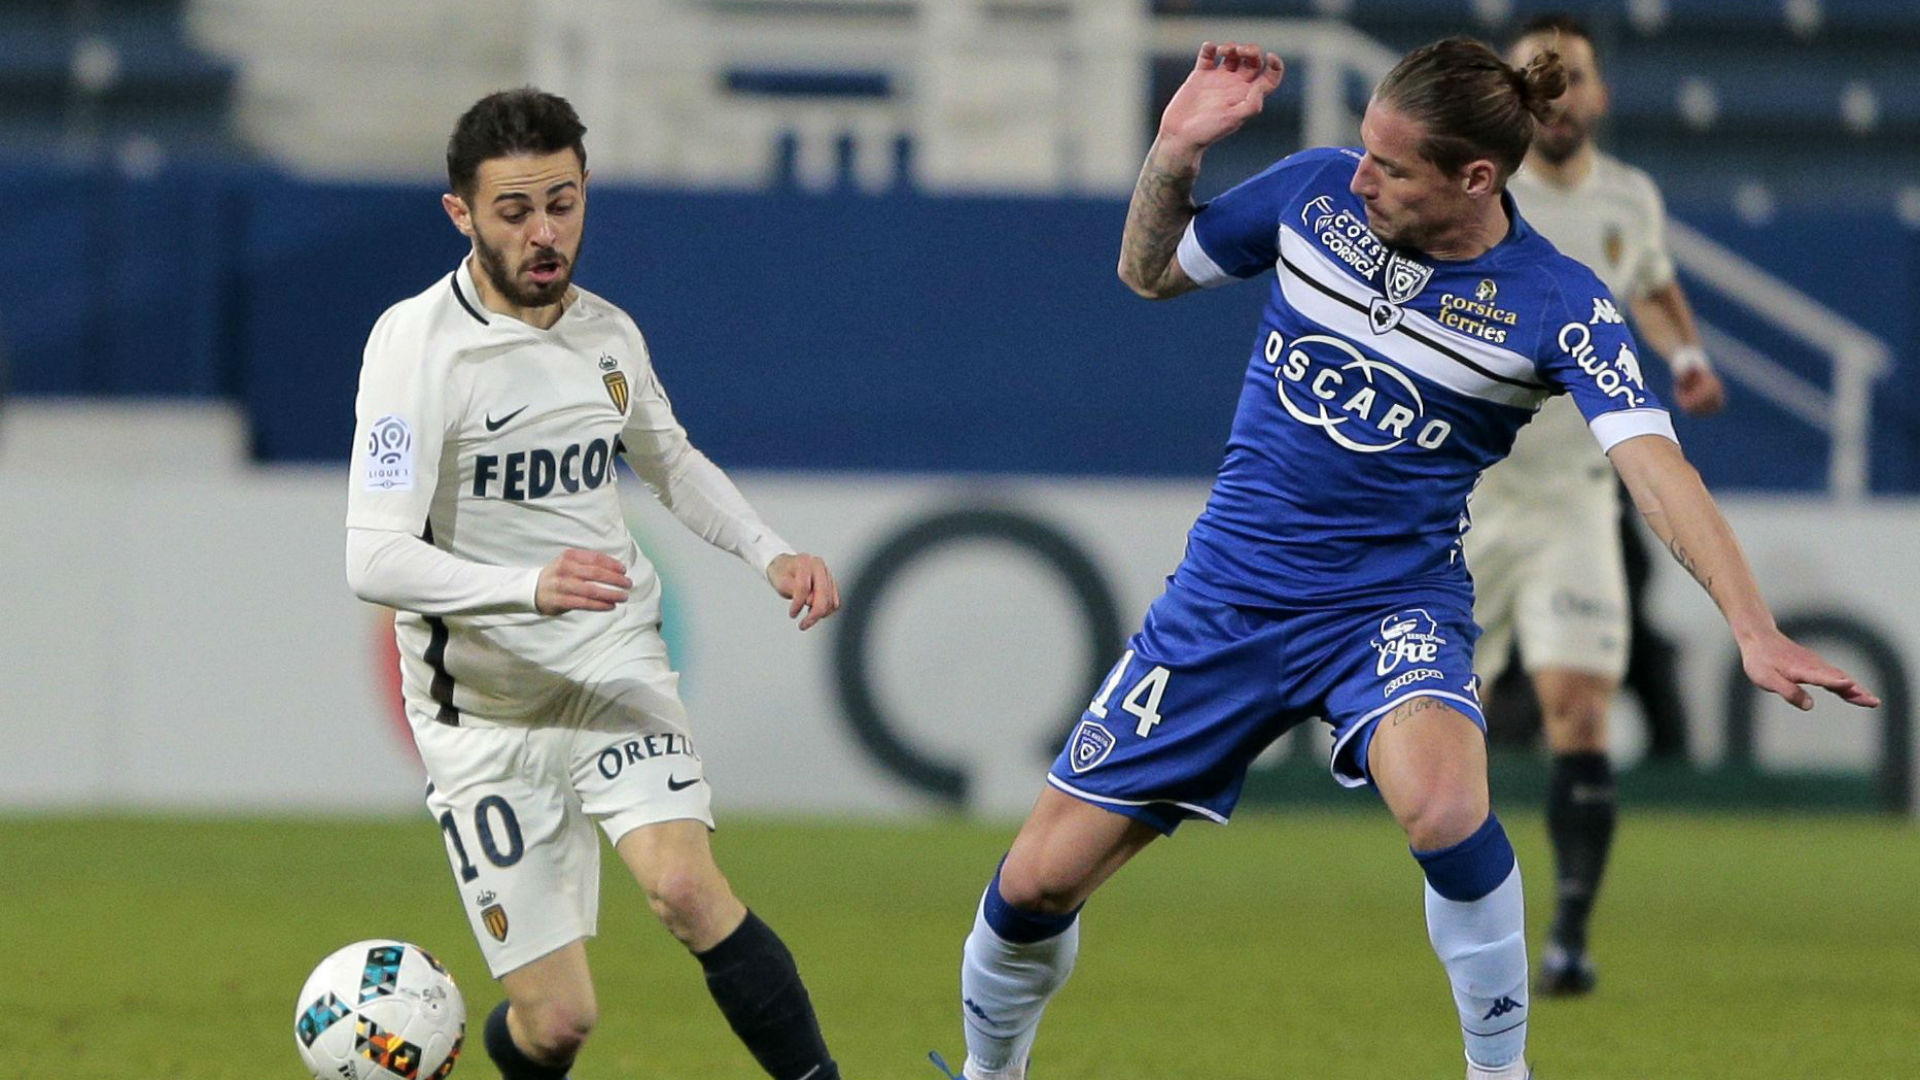 Ligue 1 : match nul du SC Bastia contre le leader Monaco